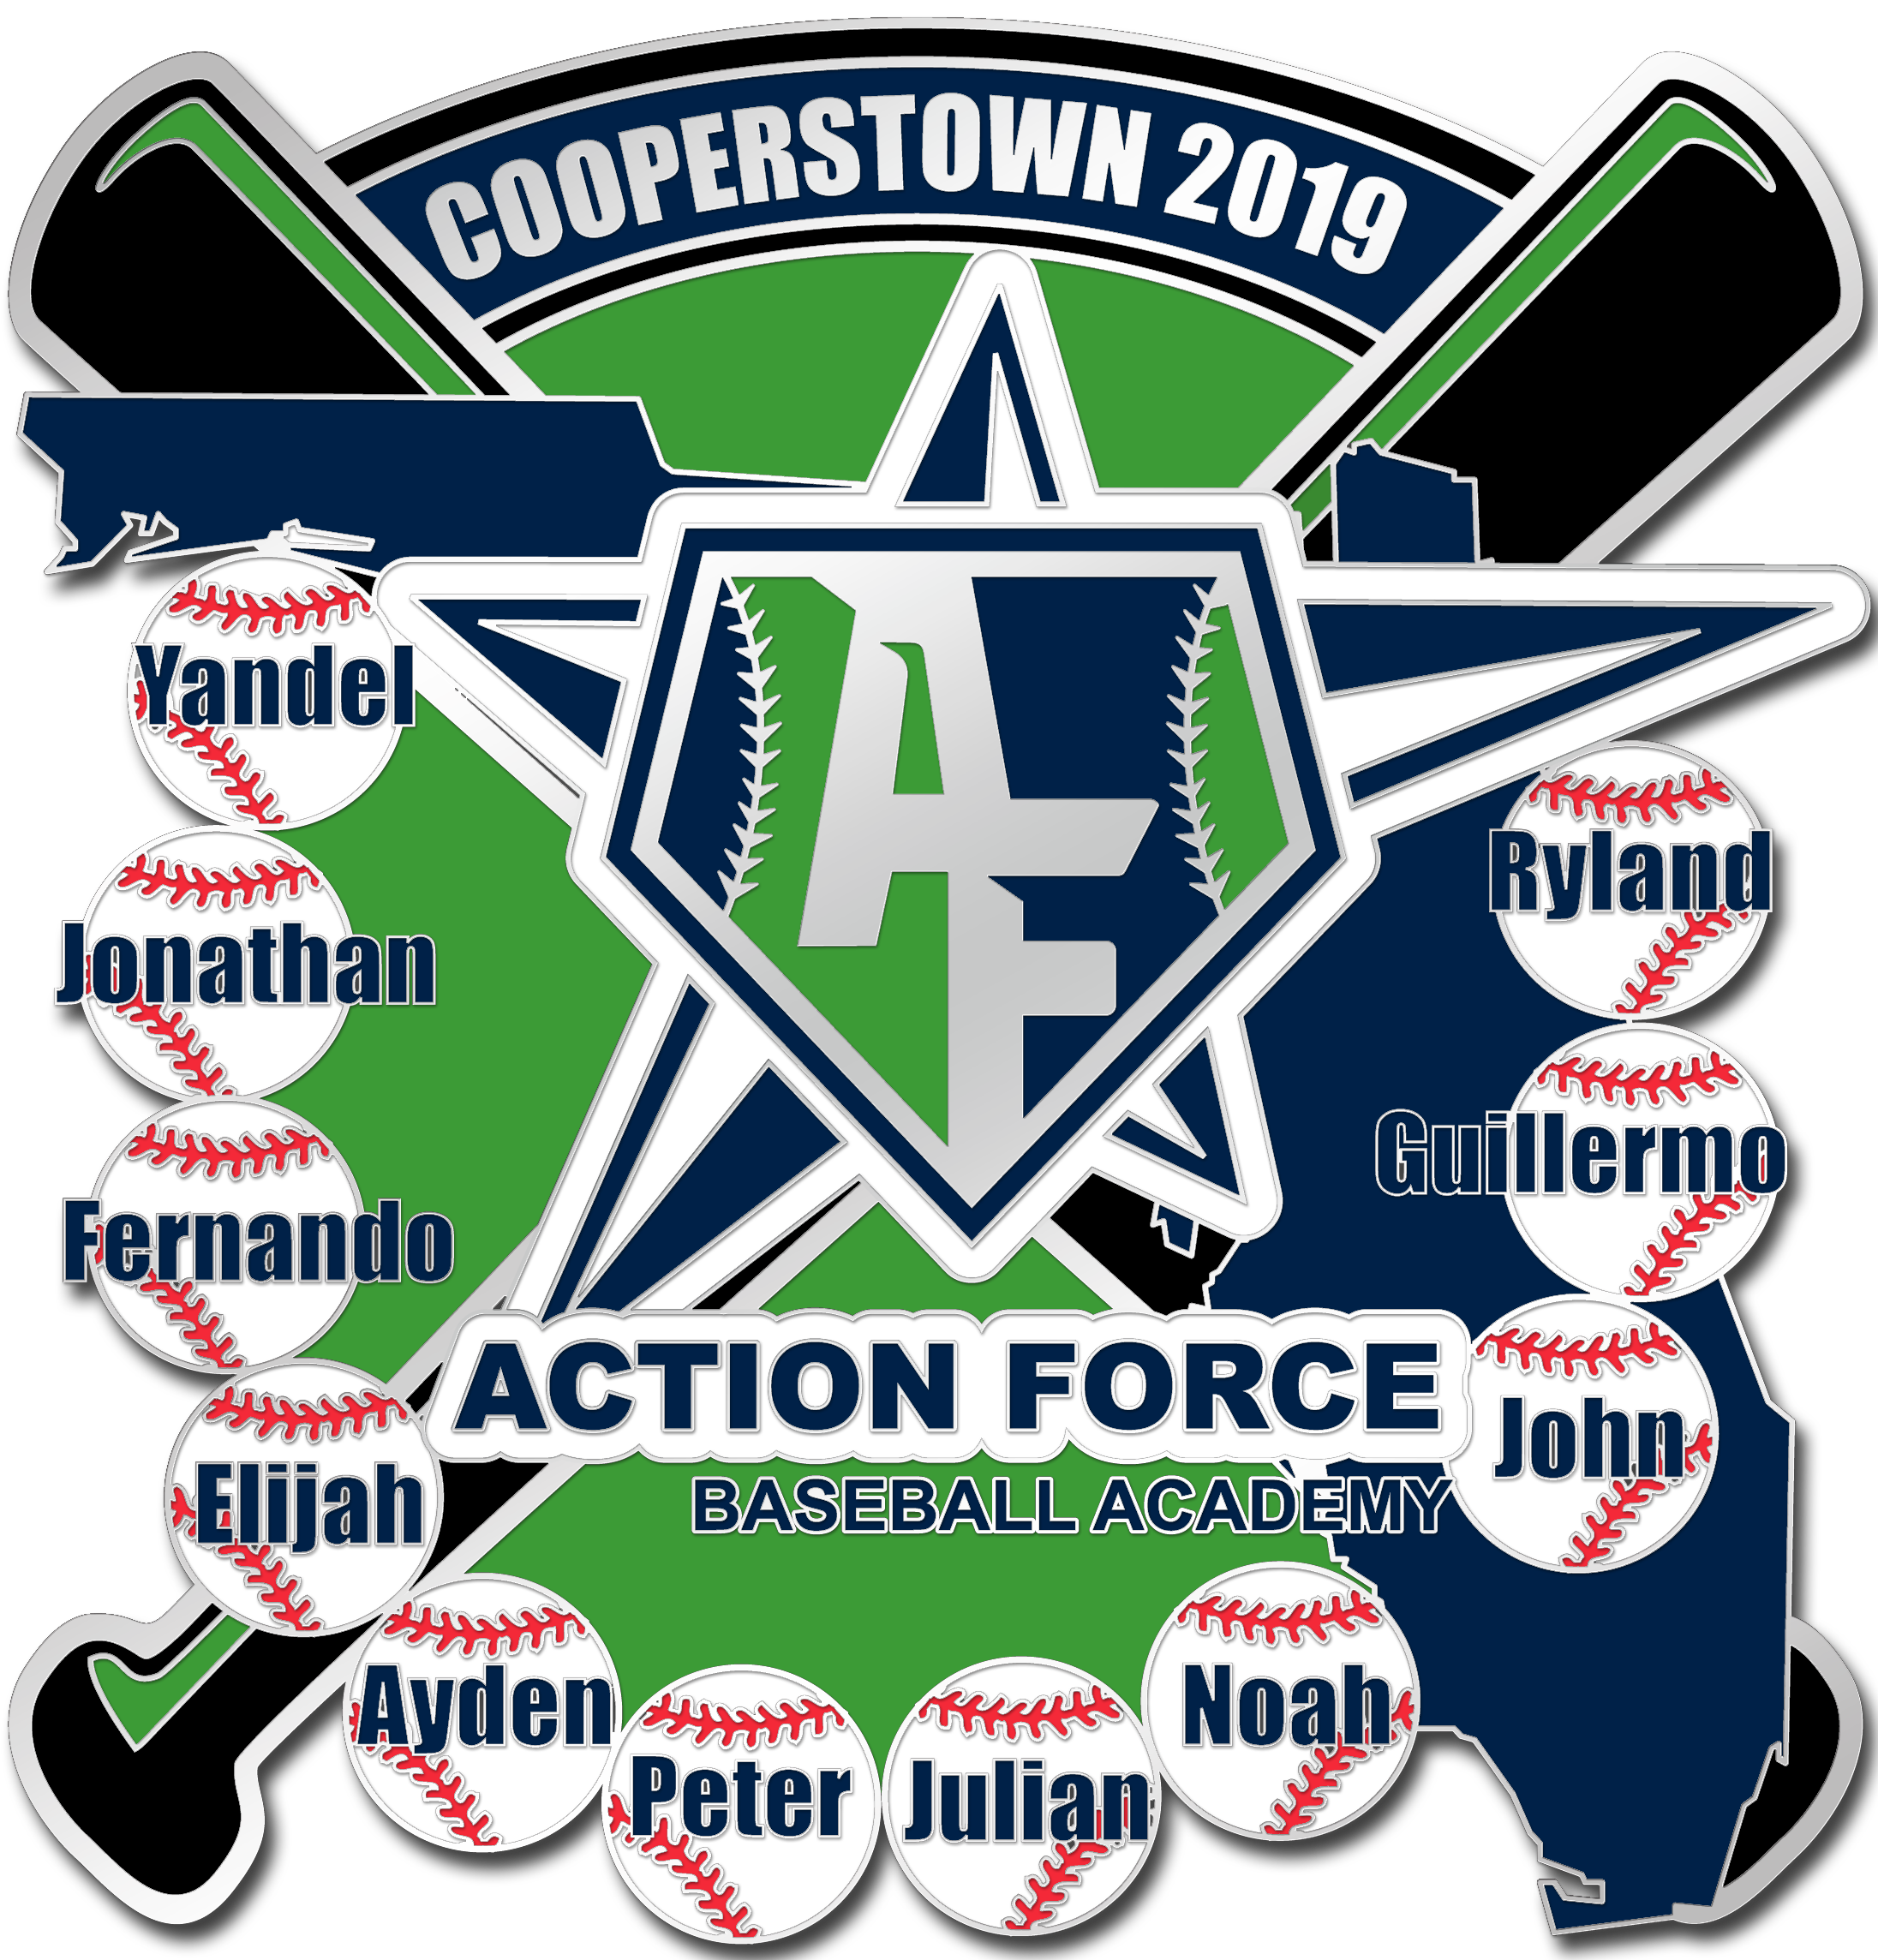 Action Force Cooperstown Pin Custom Lapel Pins Cooperstown Softball Team